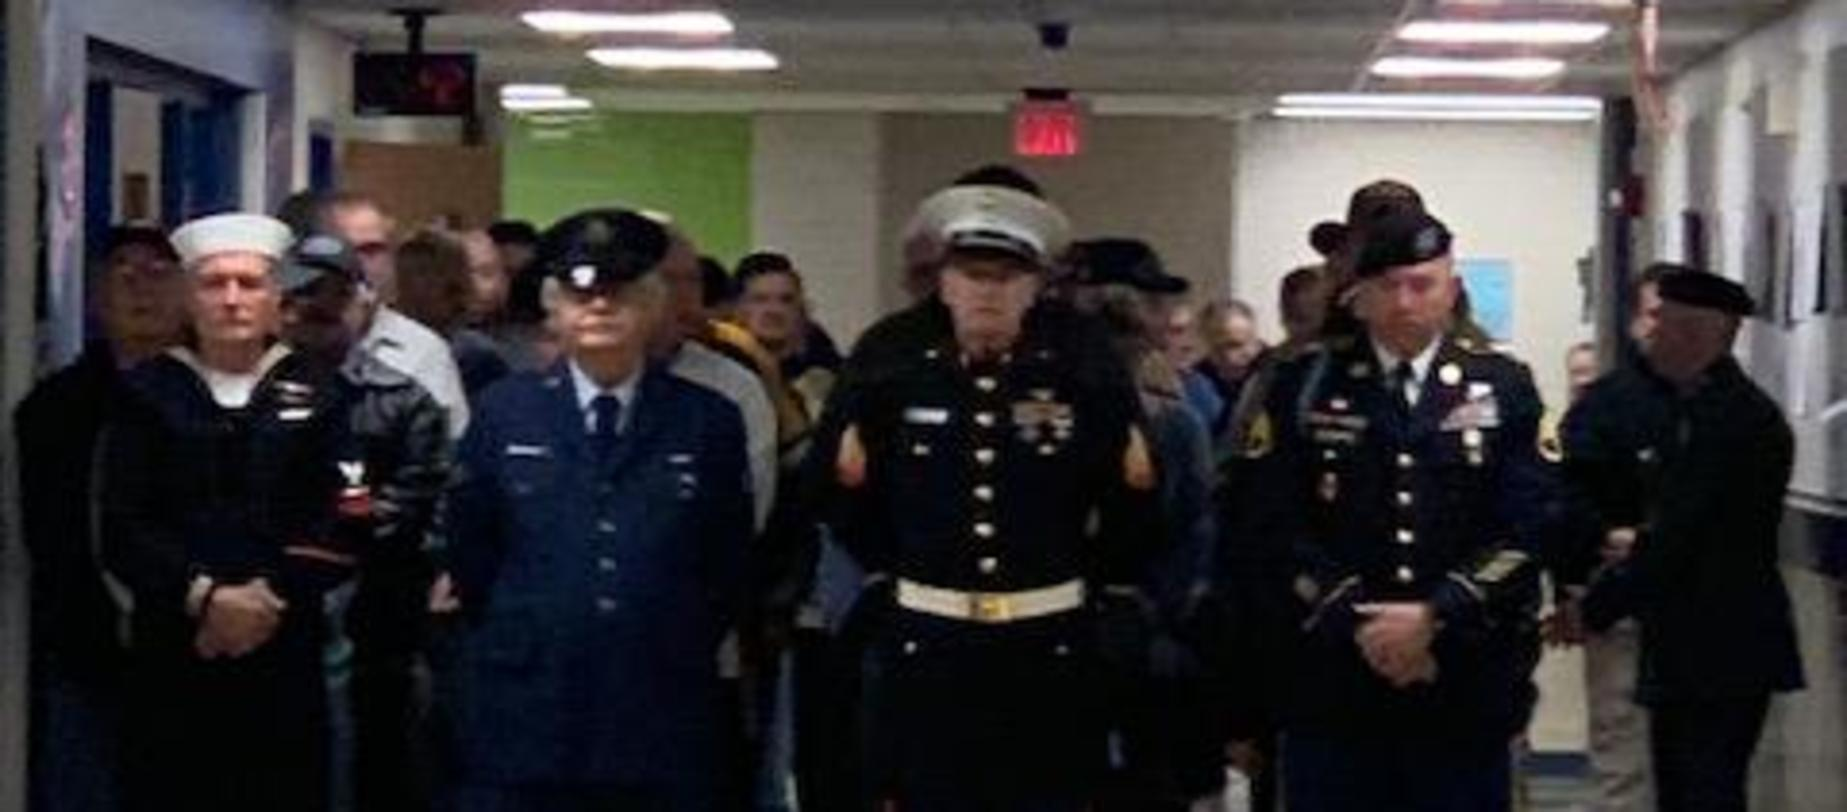 veterans lined up